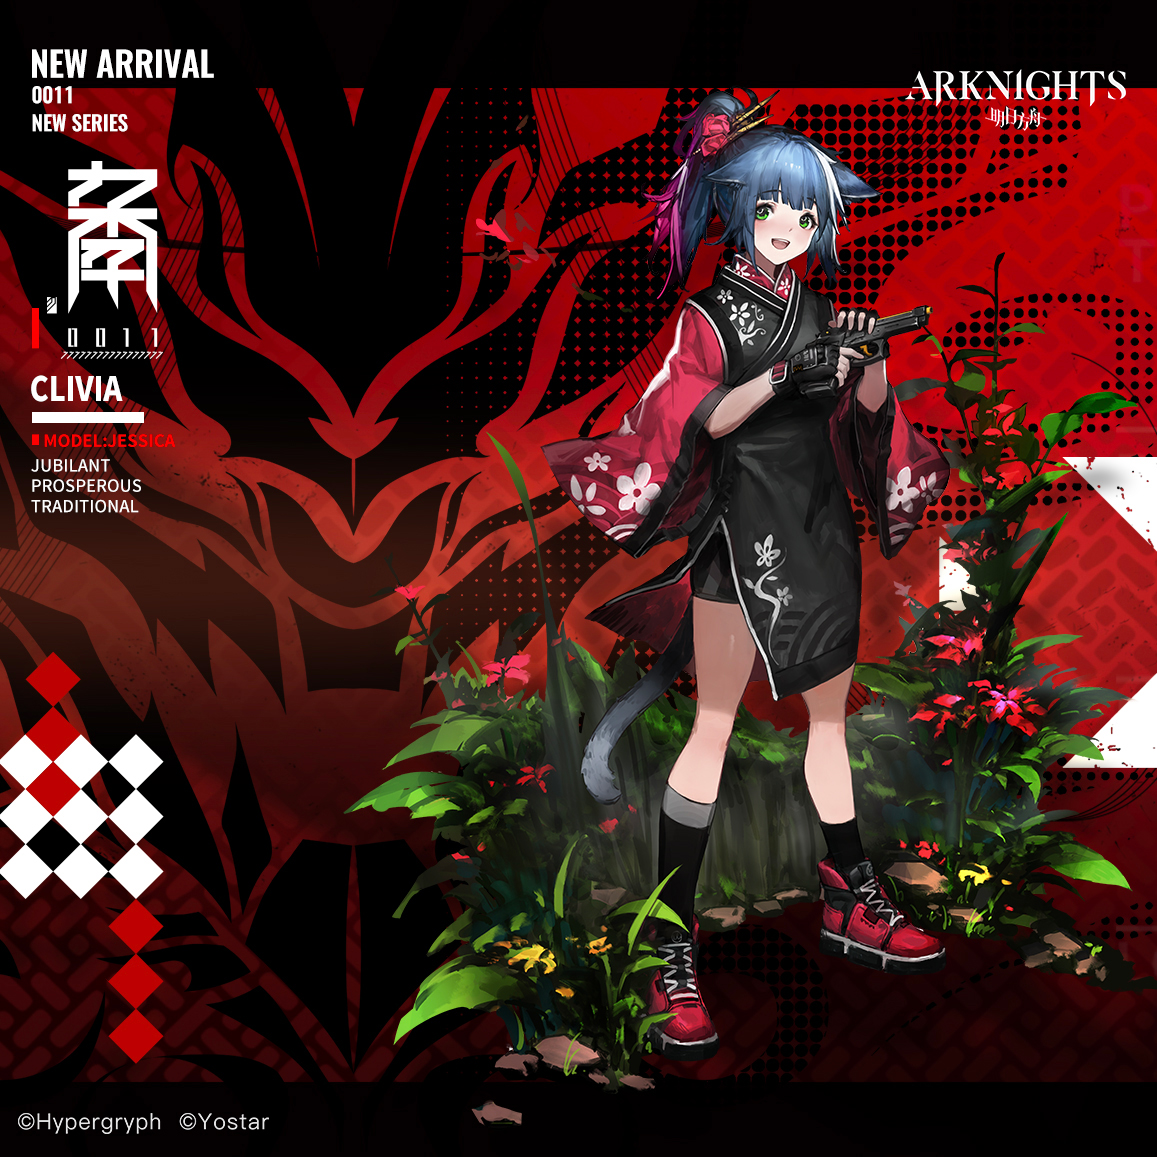 Arknights Jessica Skin Clivia (2020 0011 Collection)